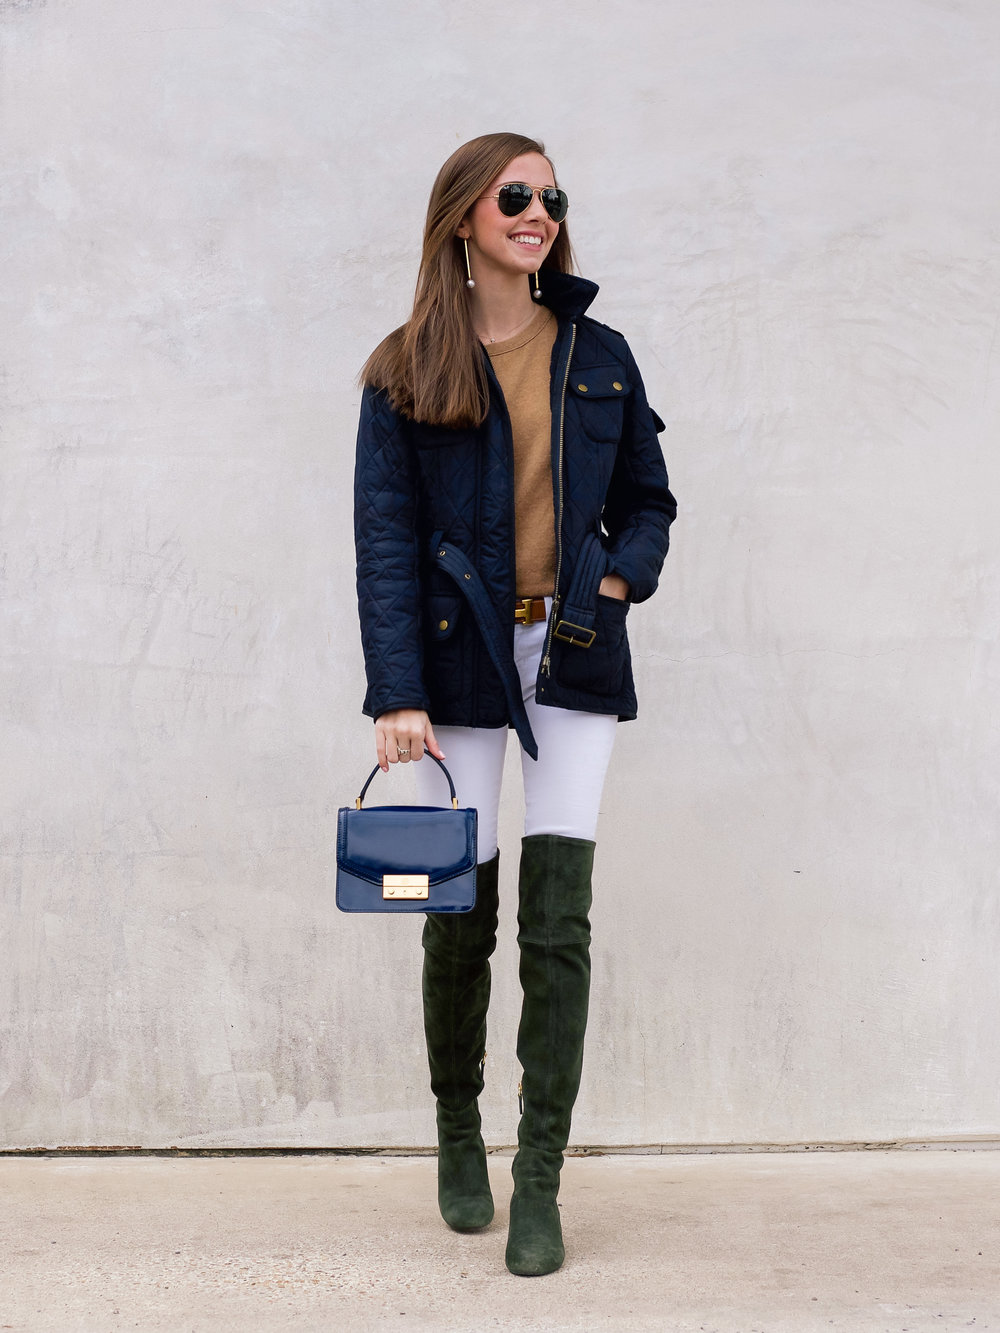 fashion blogger lcb style winter outfit barbour jacket  (15 of 55).jpg